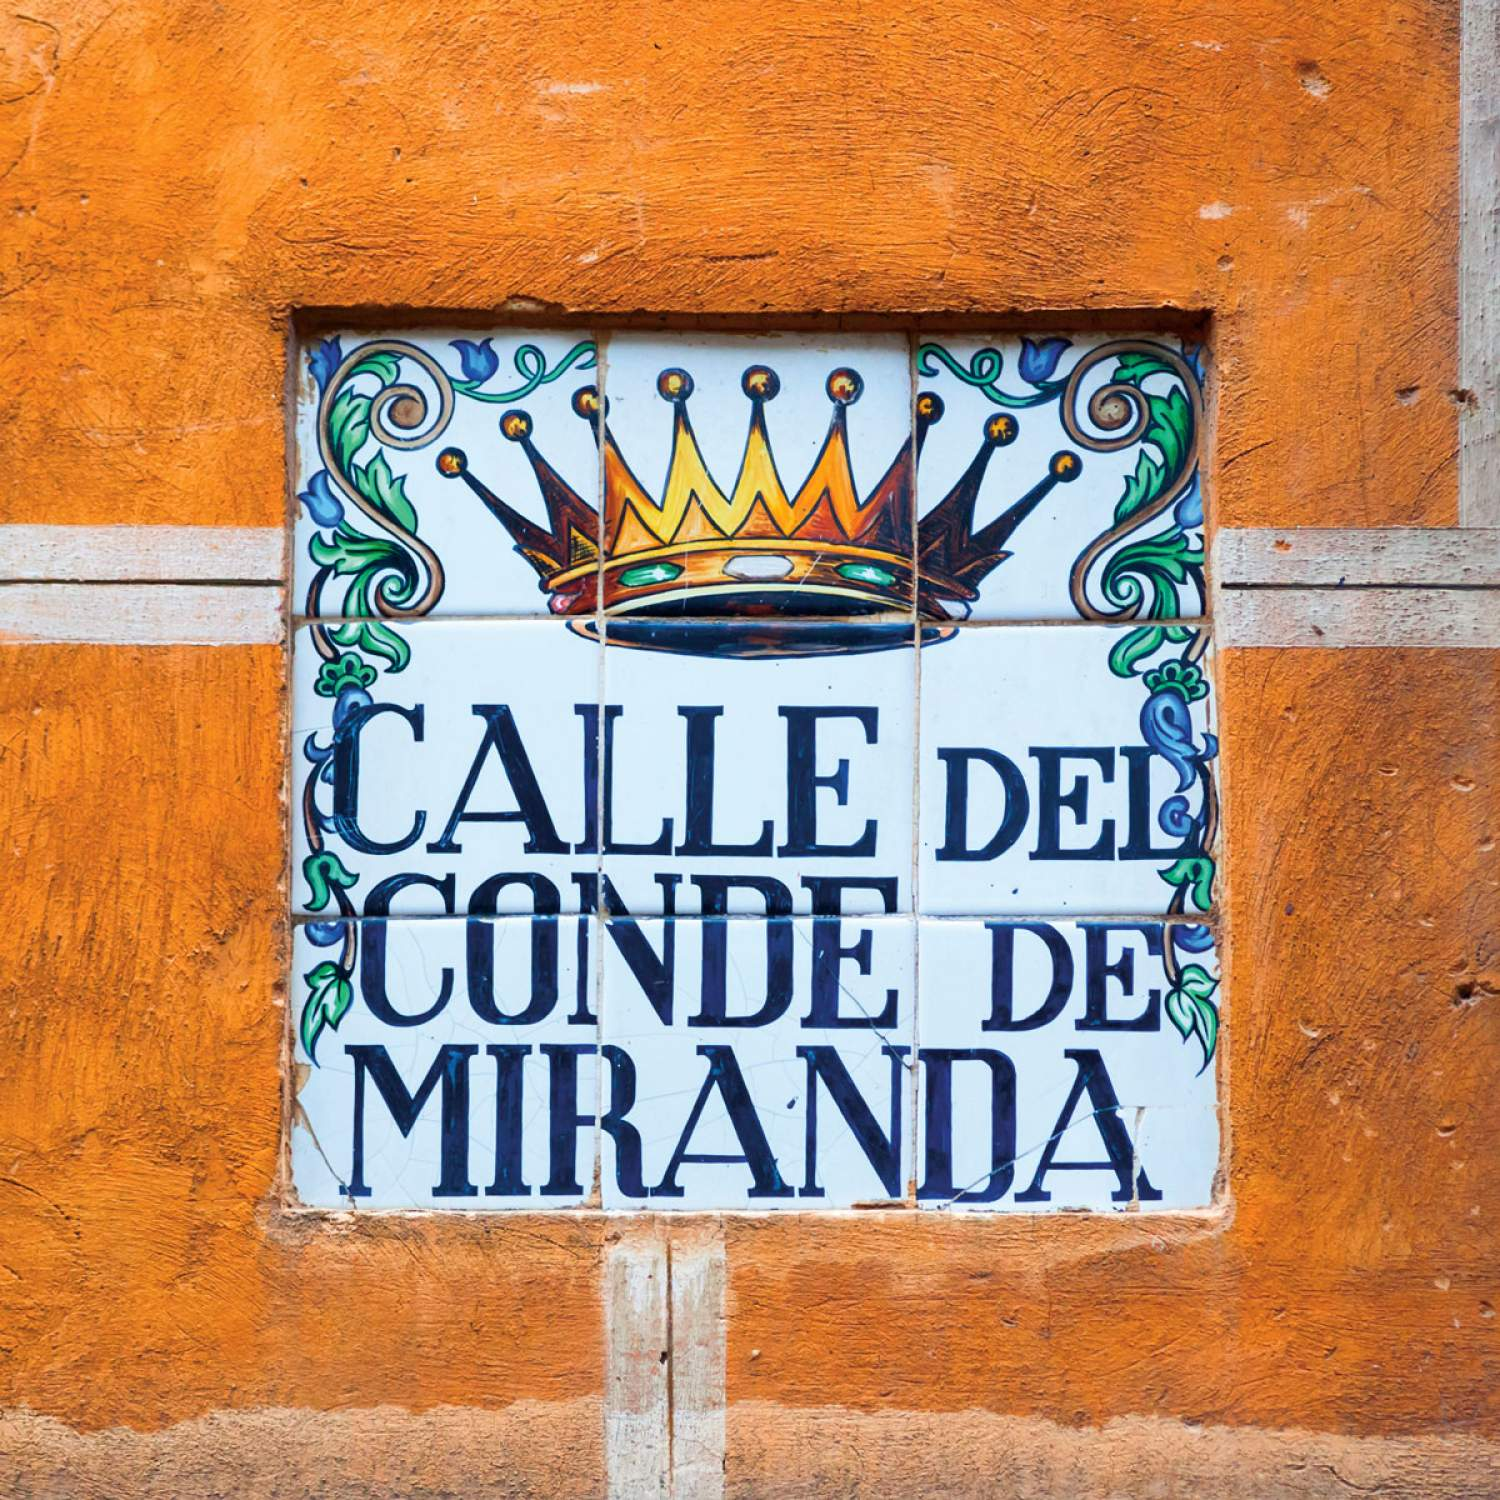 Ceramic street sign in Madrid, Spain